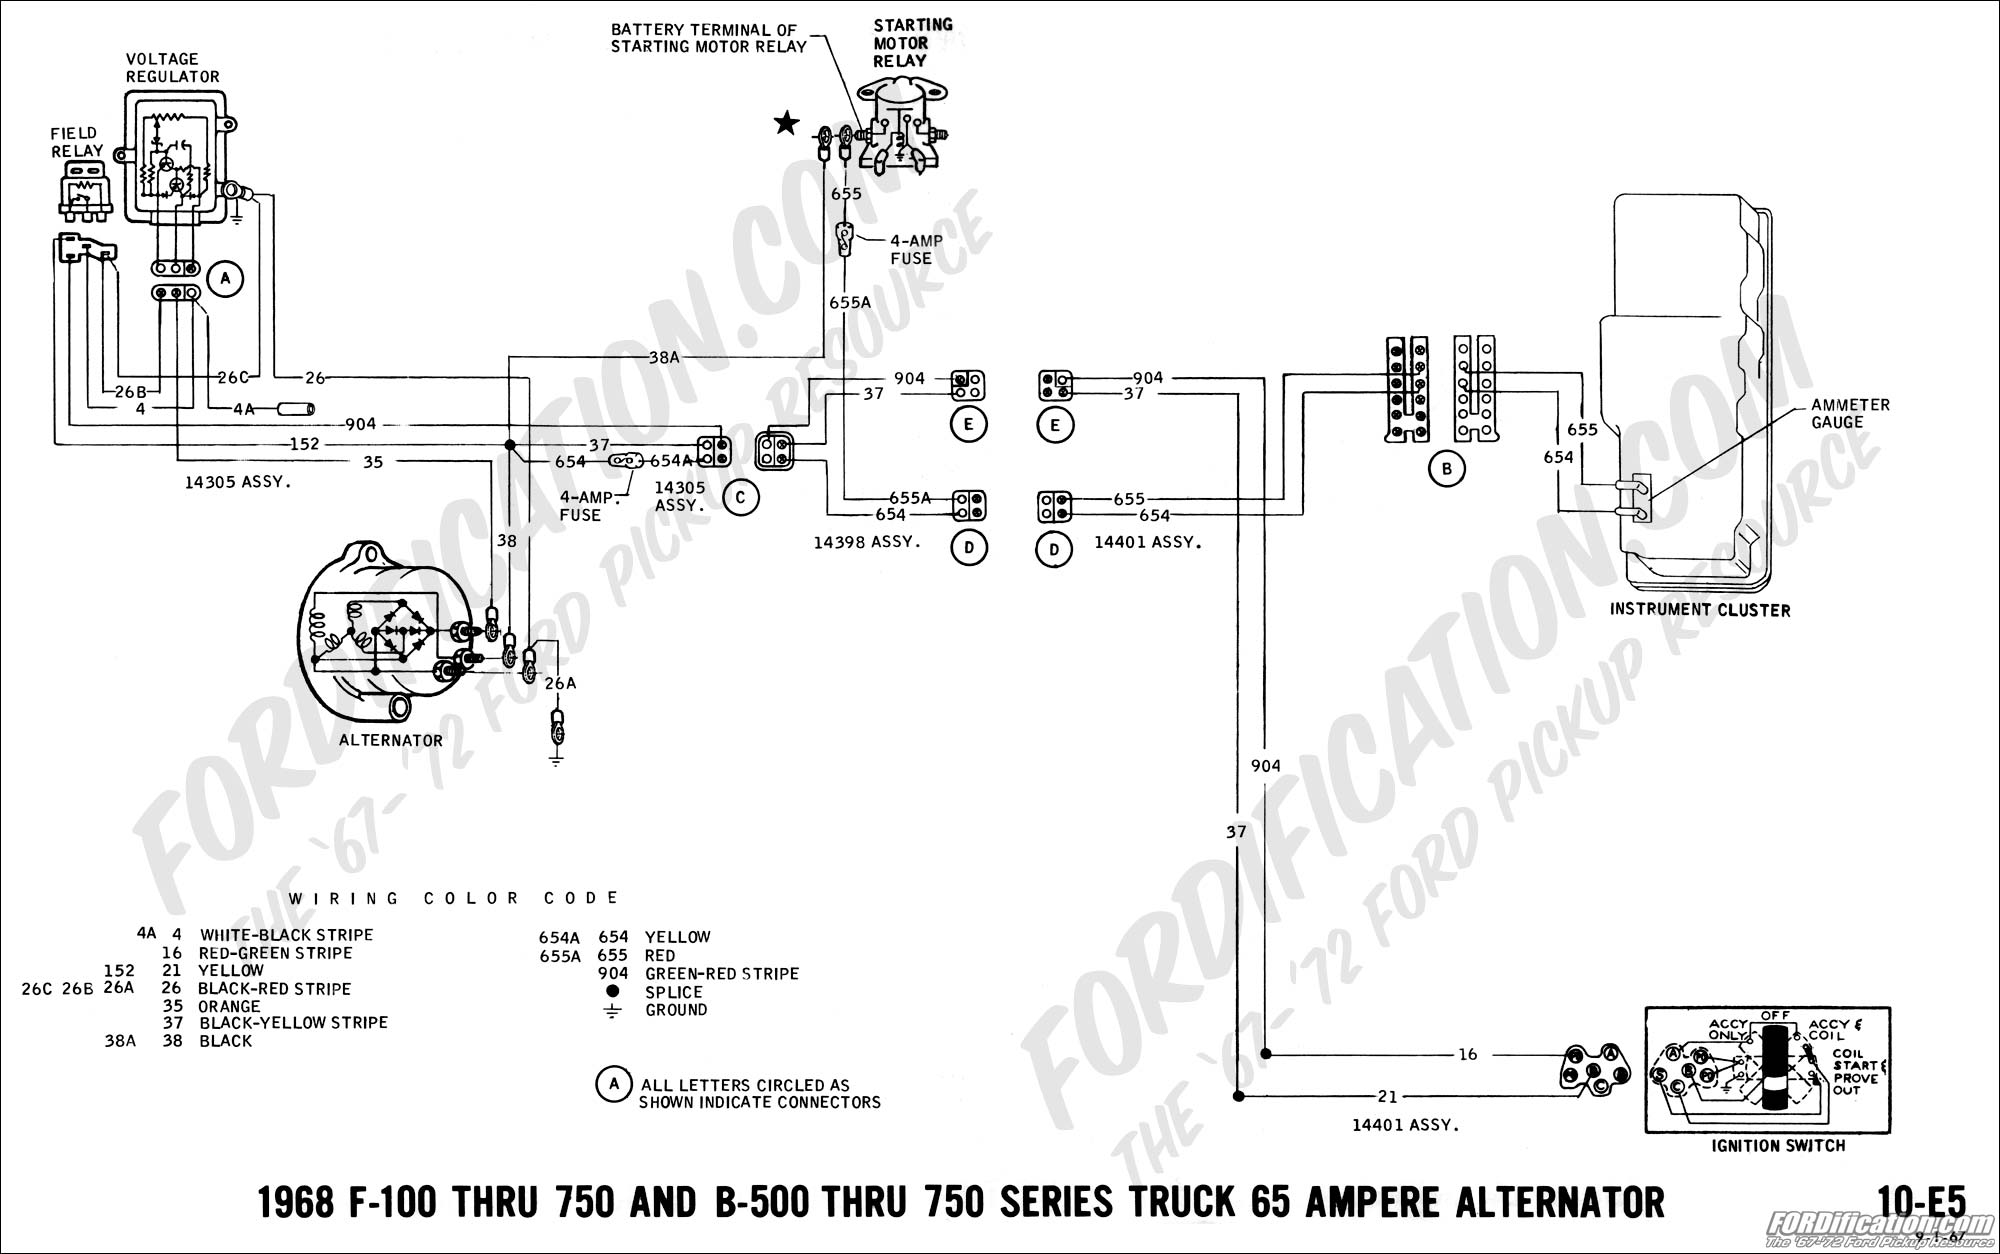 [GJFJ_338]  68C8B Ignition Switch Wiring Diagram Ford F650 | Wiring Library | Ford Ignition Switch Wiring |  | Wiring Library